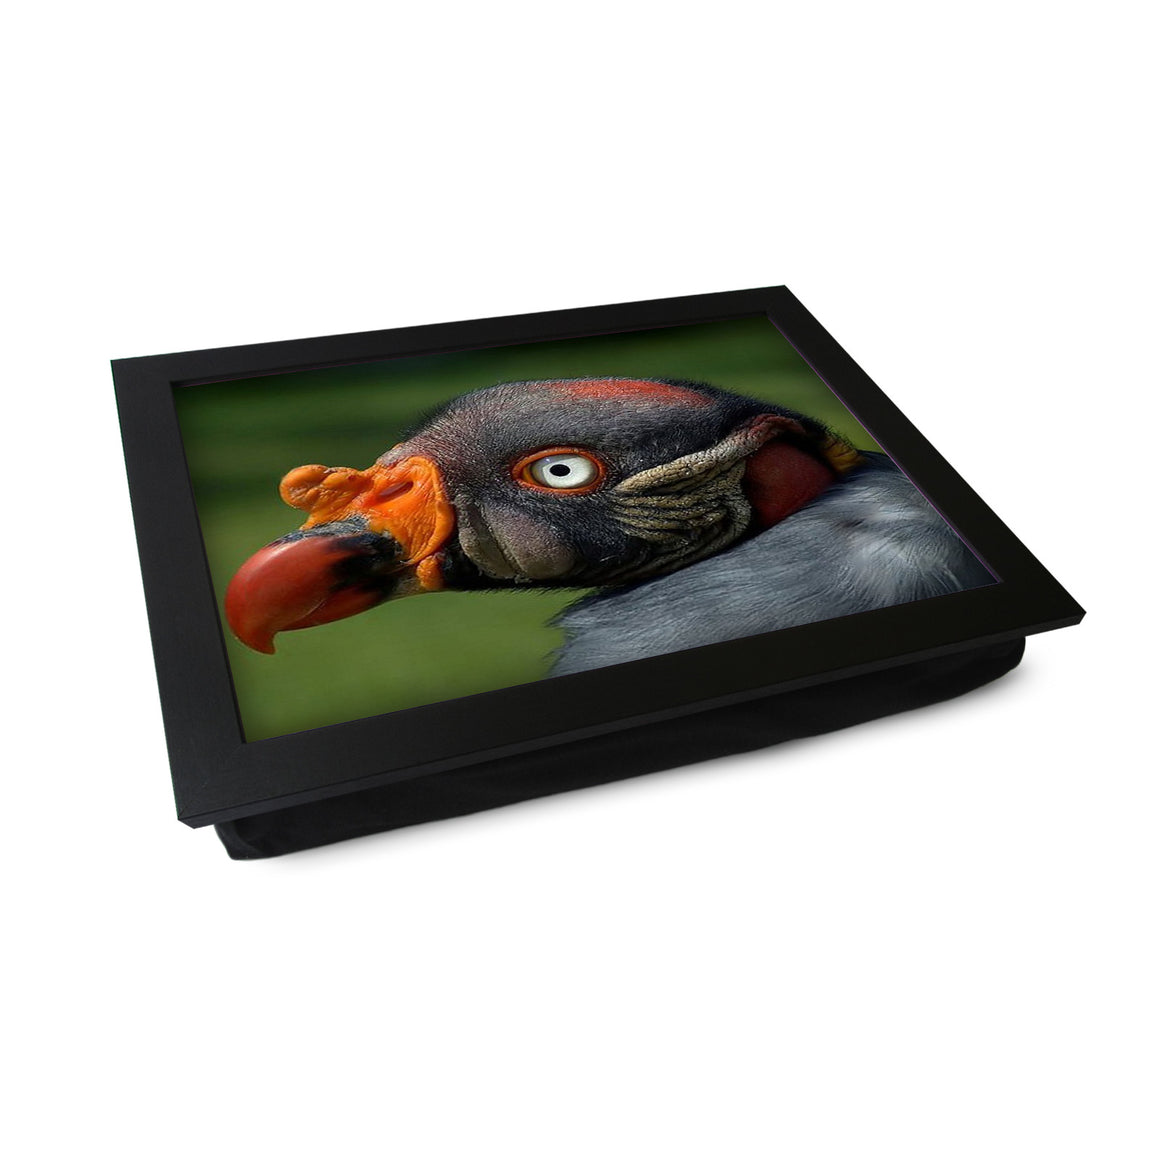 King Vulture Lap Tray - L0426